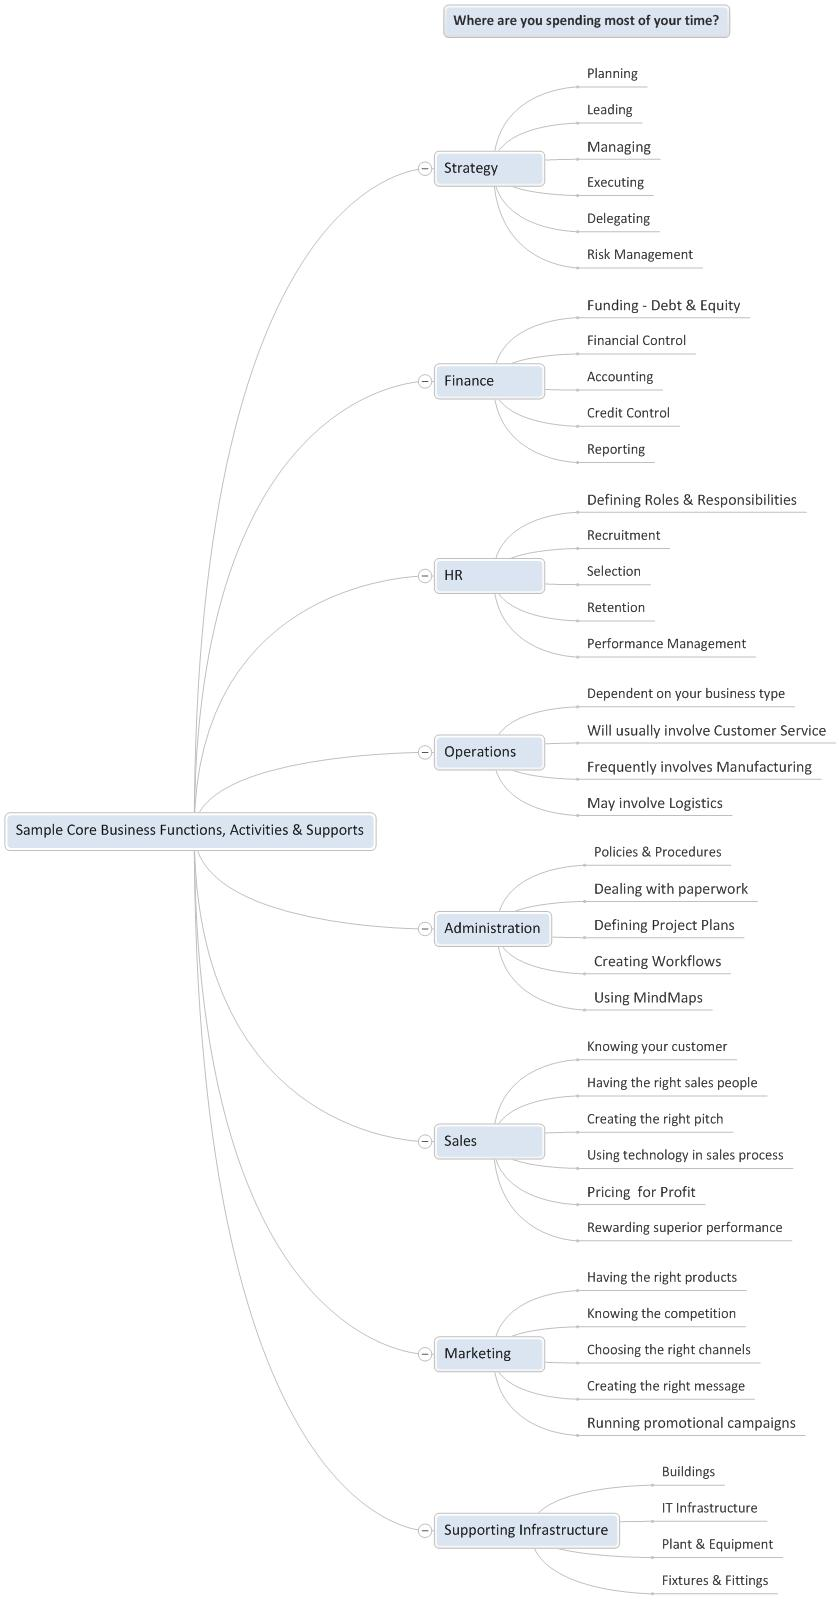 Sample Core Business Functions